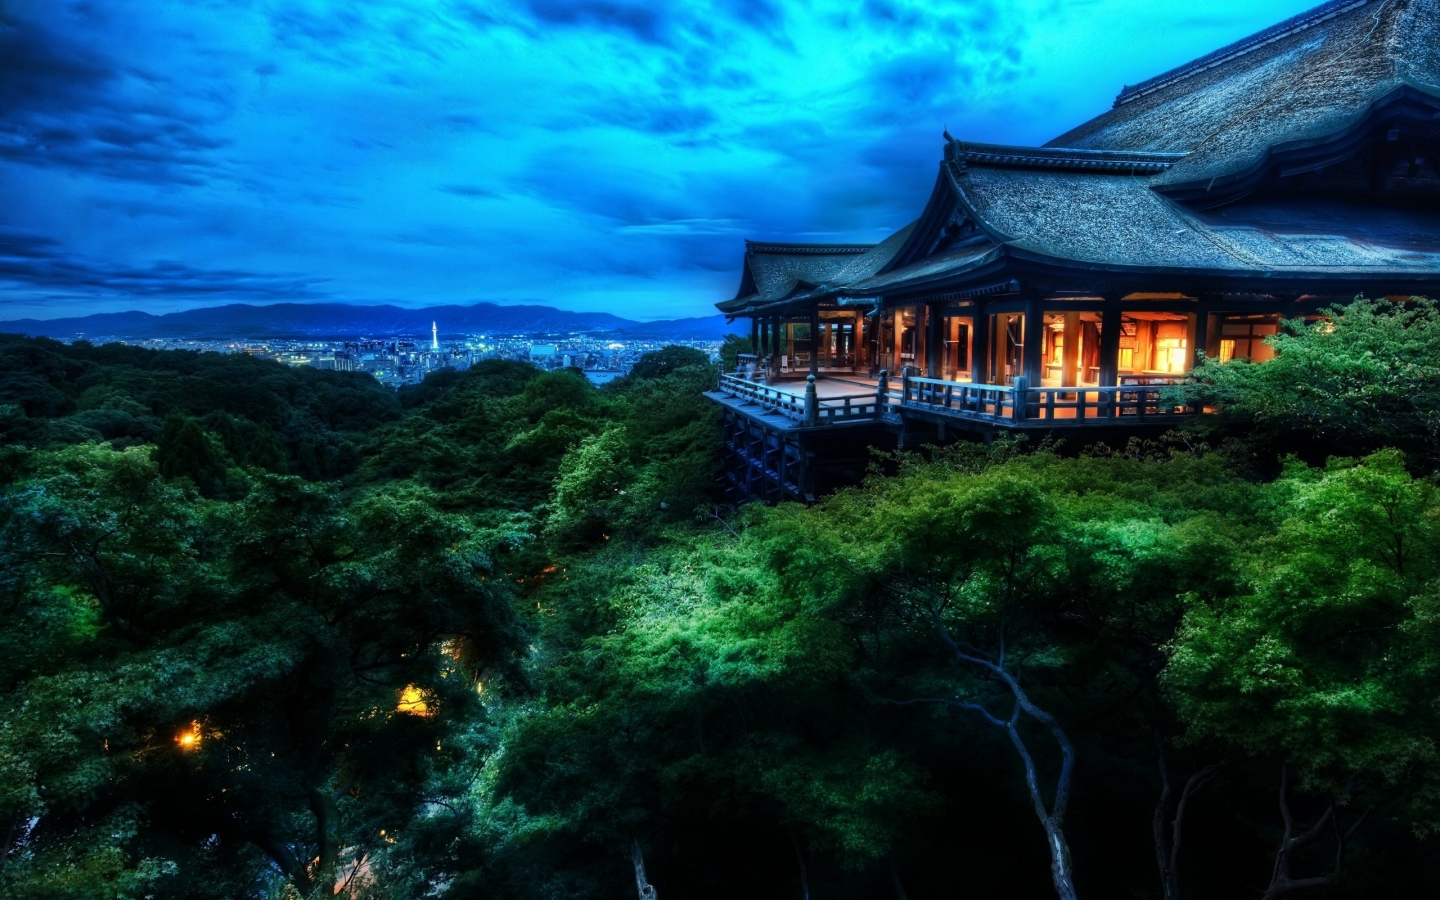 Kyoto Japan for 1440 x 900 widescreen resolution